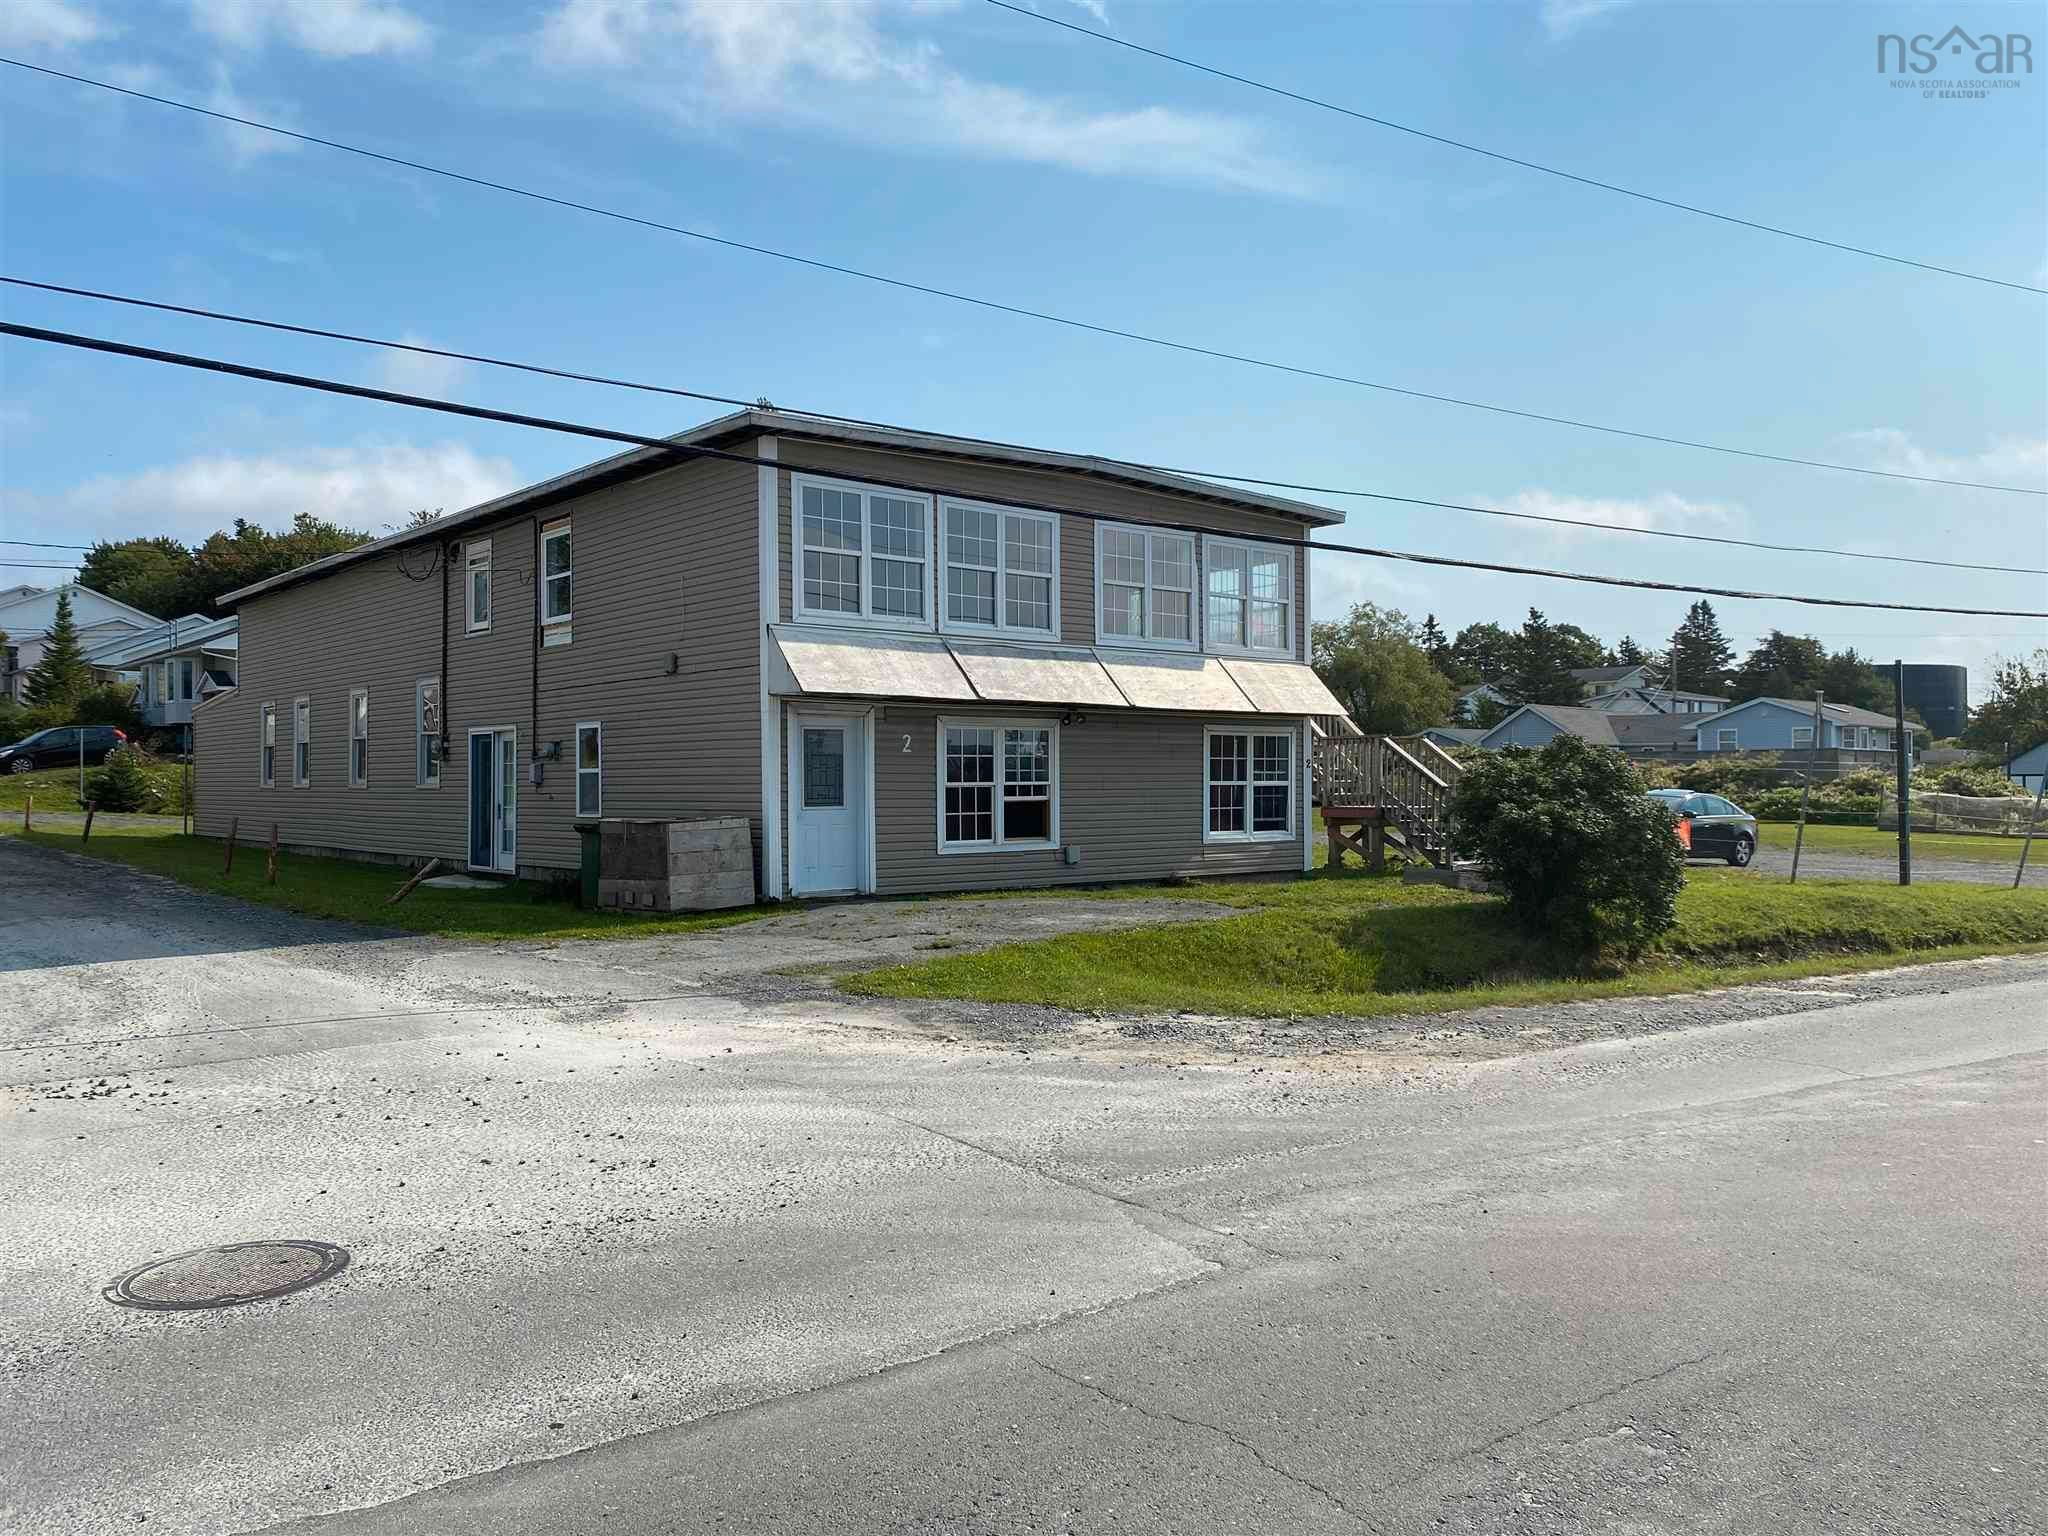 Main Photo: 2 Autoport Avenue in Eastern Passage: 11-Dartmouth Woodside, Eastern Passage, Cow Bay Commercial  (Halifax-Dartmouth)  : MLS®# 202123573